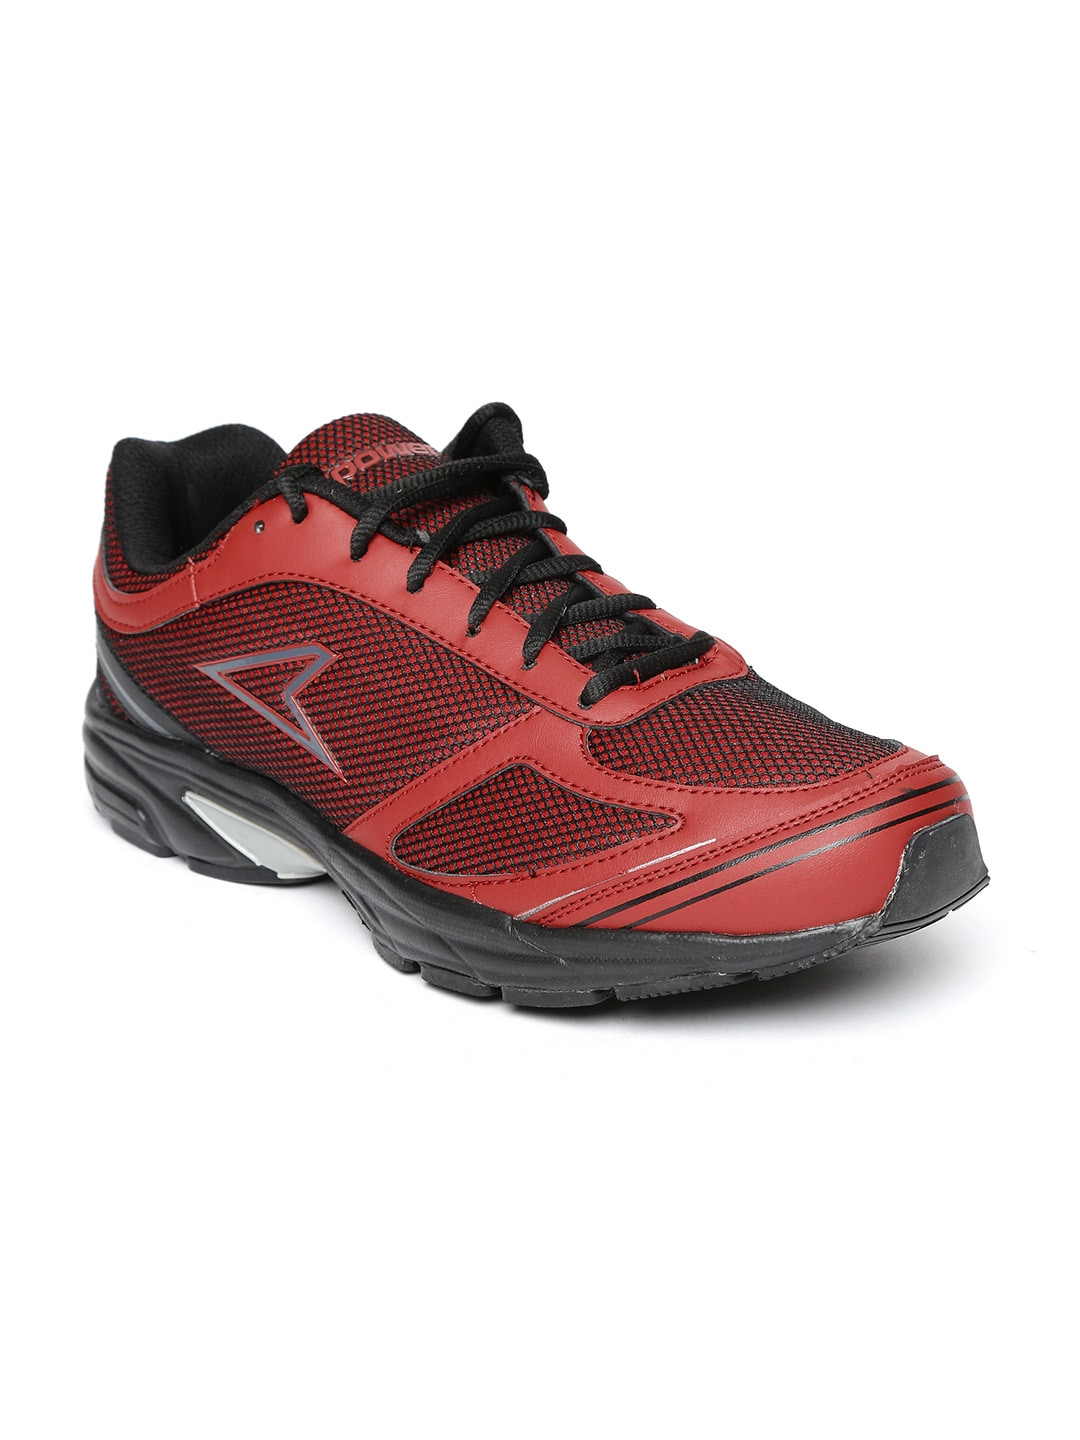 promo code 4f08a c136b Sports Shoes - Buy Sport Shoes For Men   Women Online   Myntra